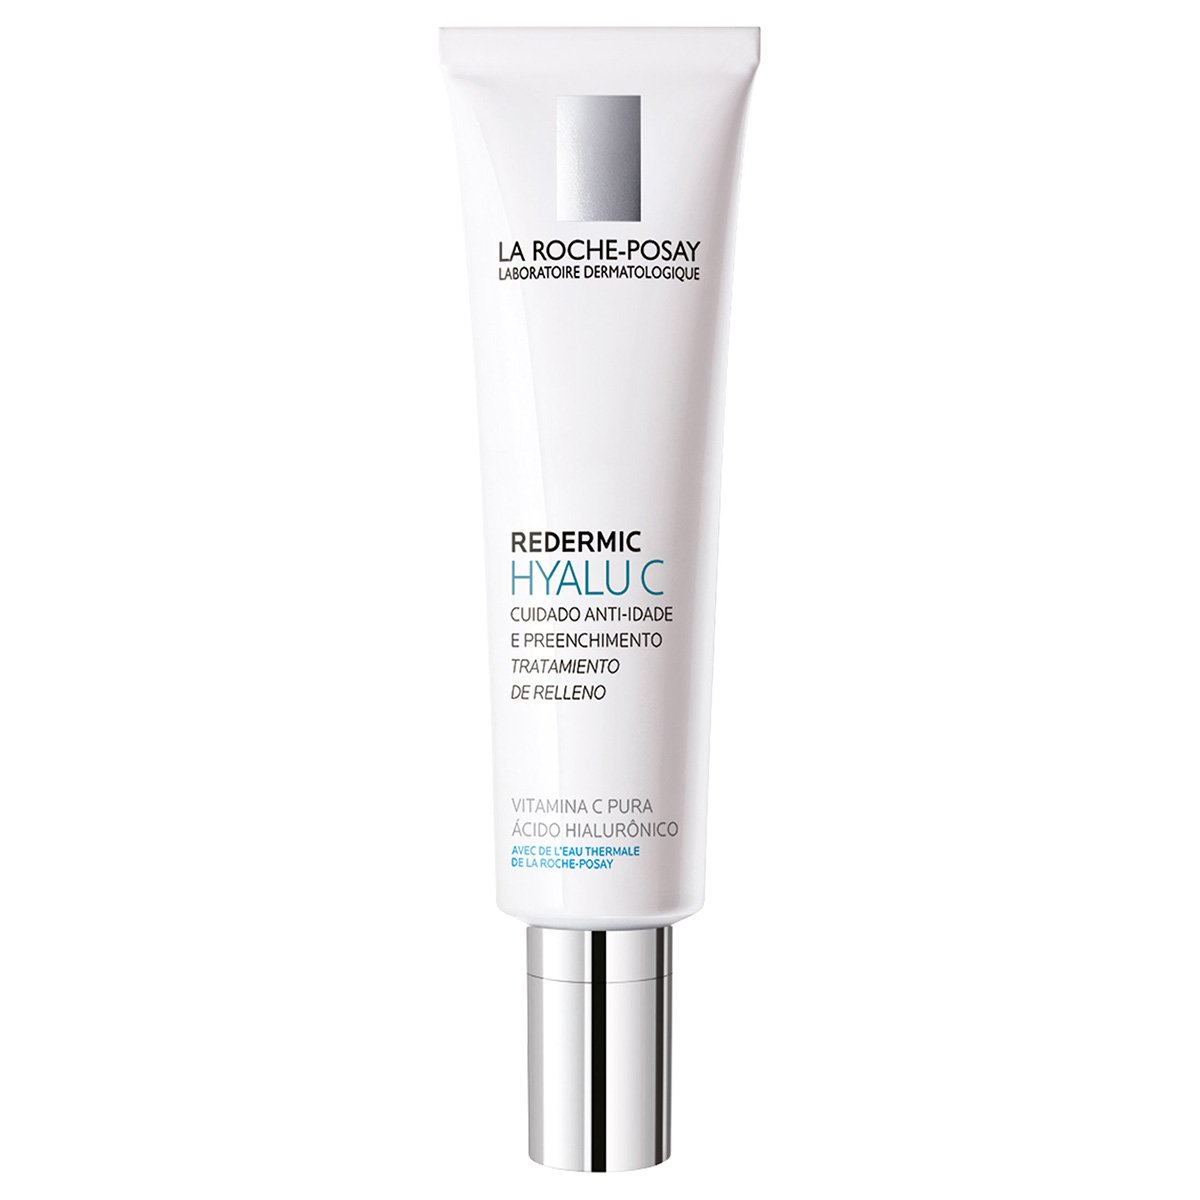 La Roche-Posay Redermic C Anti-Wrinkle Firming Face Moisturizer with Vitamin C and Hyaluronic Acid, 1.35 Fl. Oz.